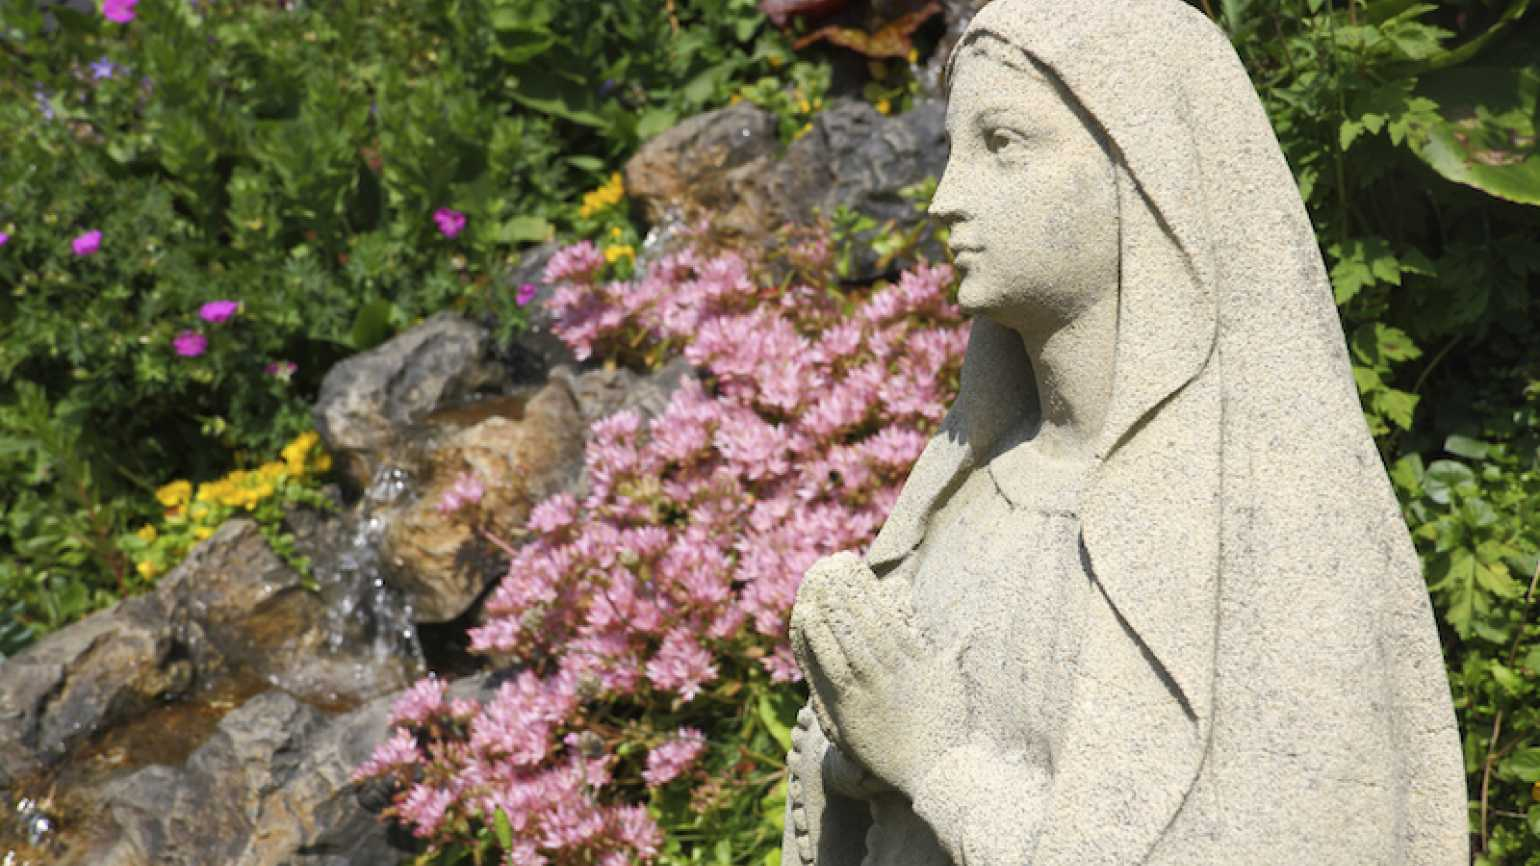 The Virgin Mary praying. Photo by John Kelly, Thinkstock.